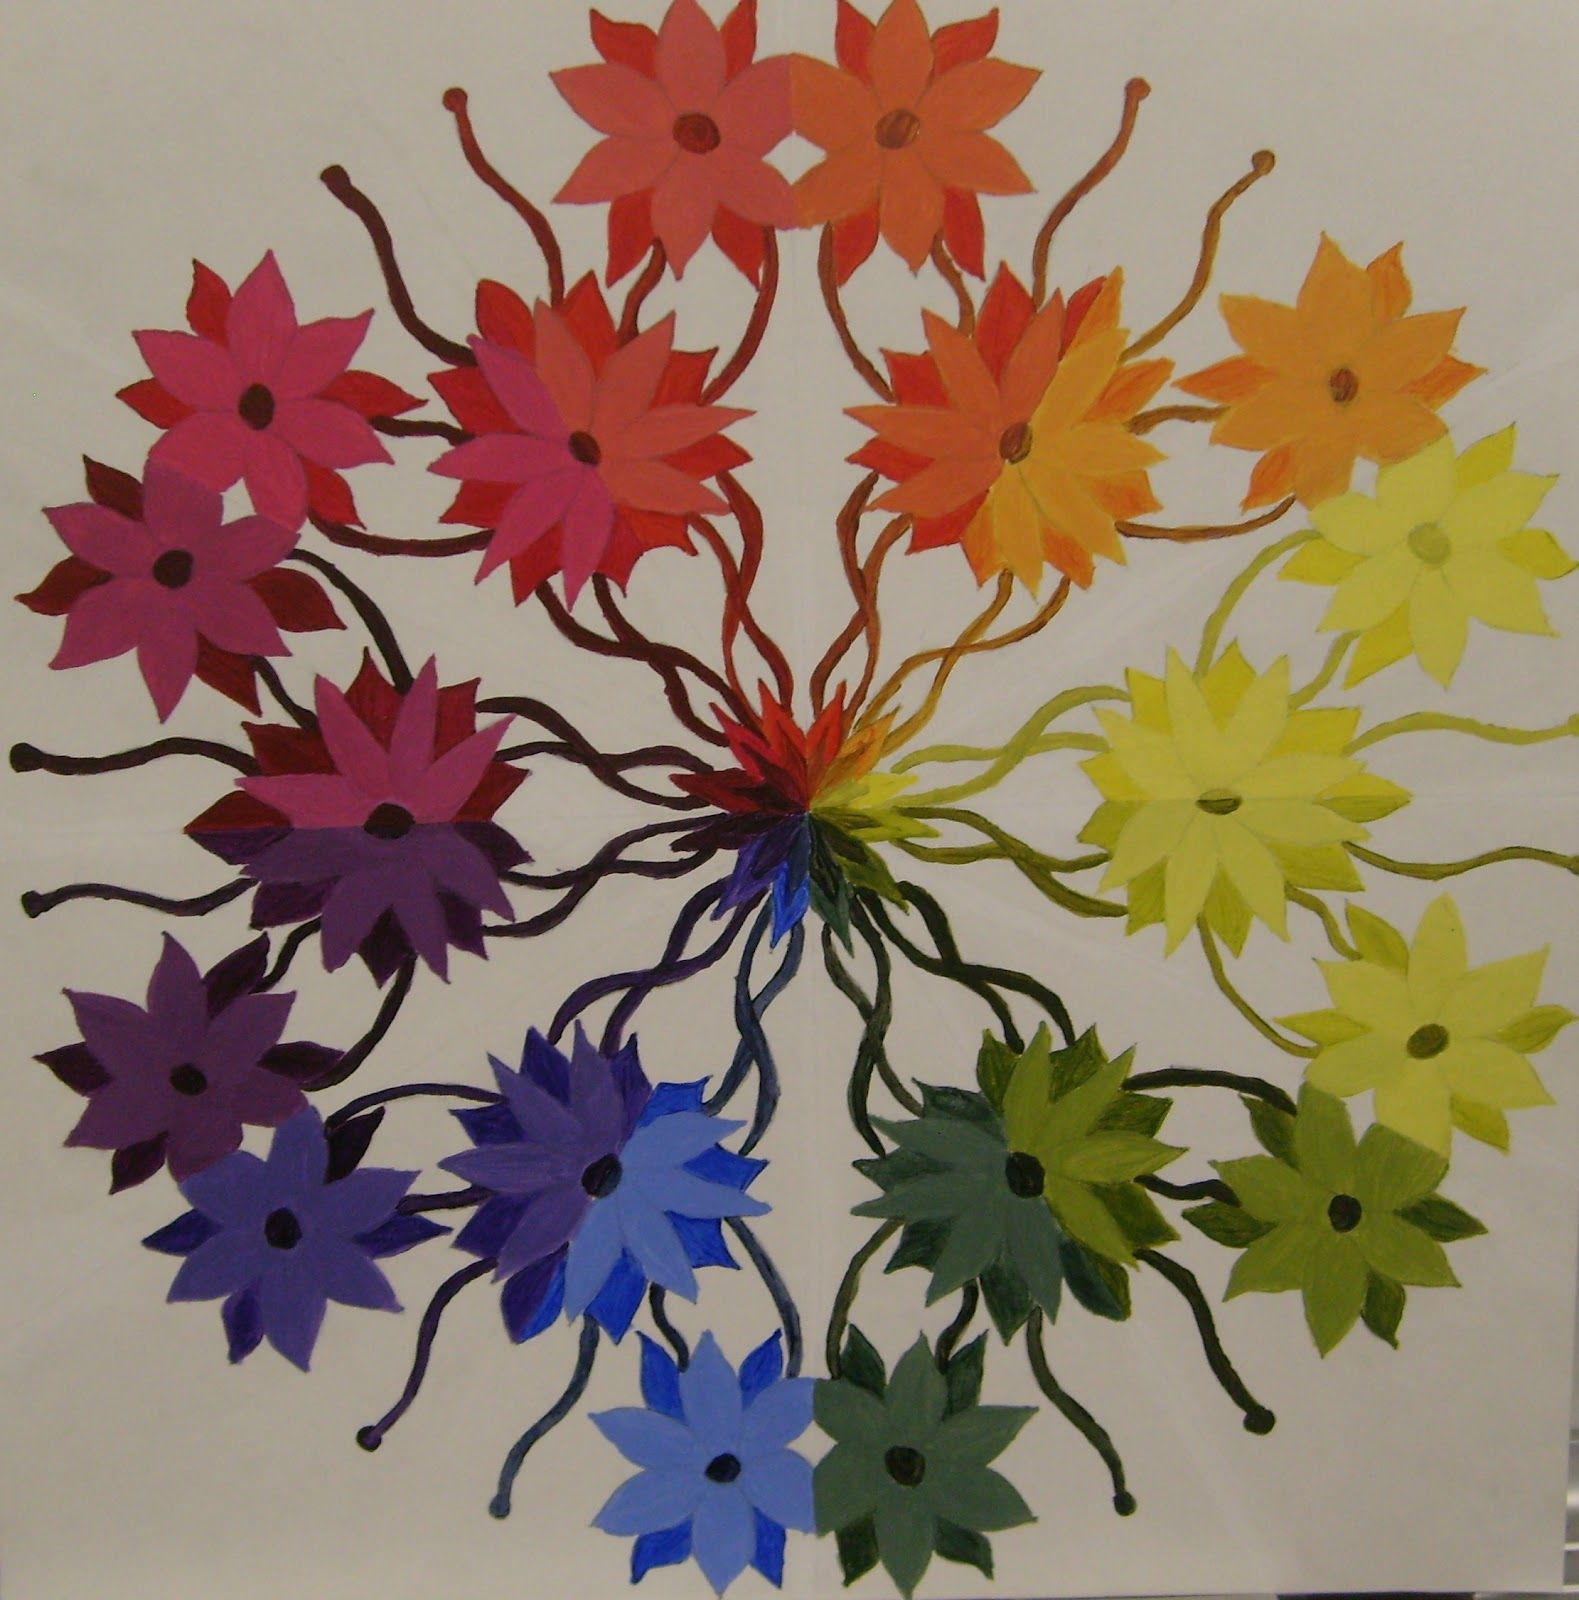 Color circle art publishing - Color Wheel Projects For High School Splatters And Smudges Color